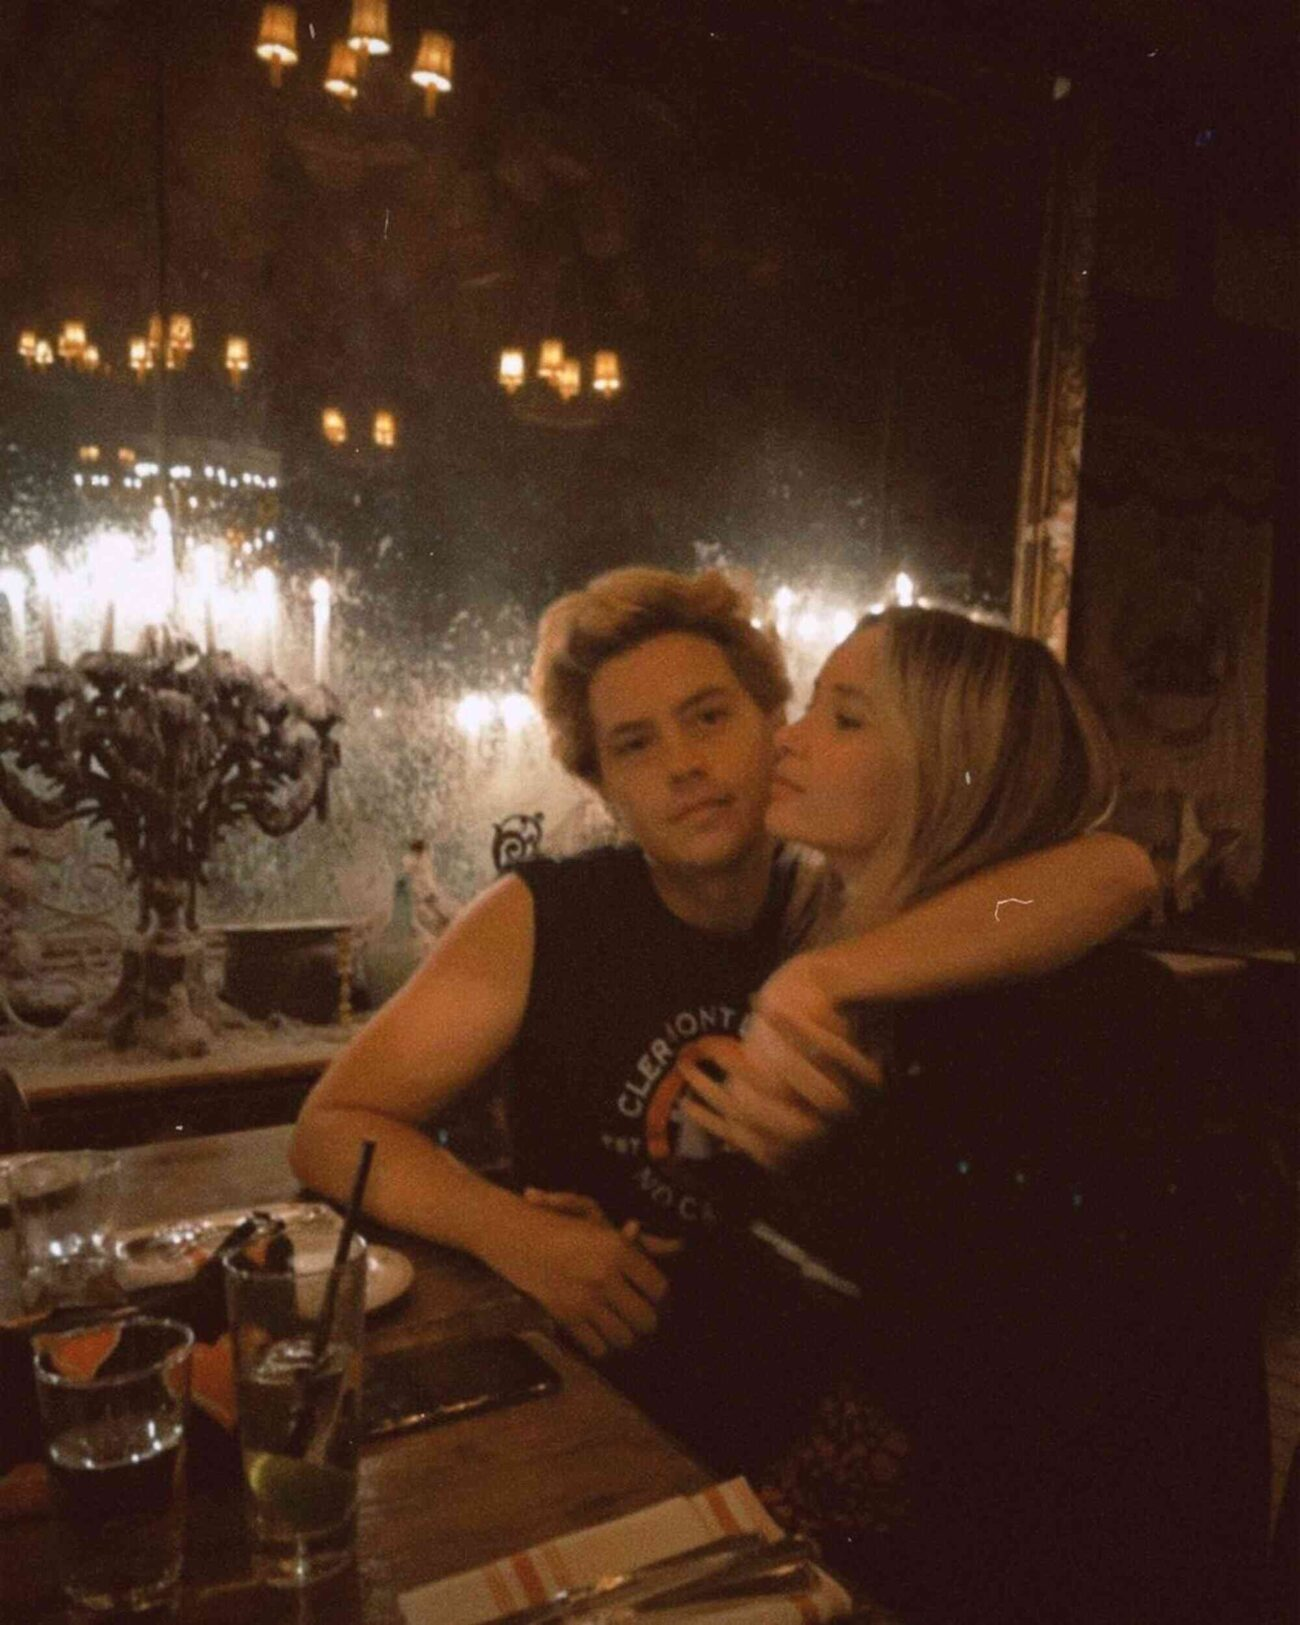 Cole Sprouse is angry at fans who are obsessed with his personal life. Learn all about why the 'Riverdale' star's insta has sparked a controversy.